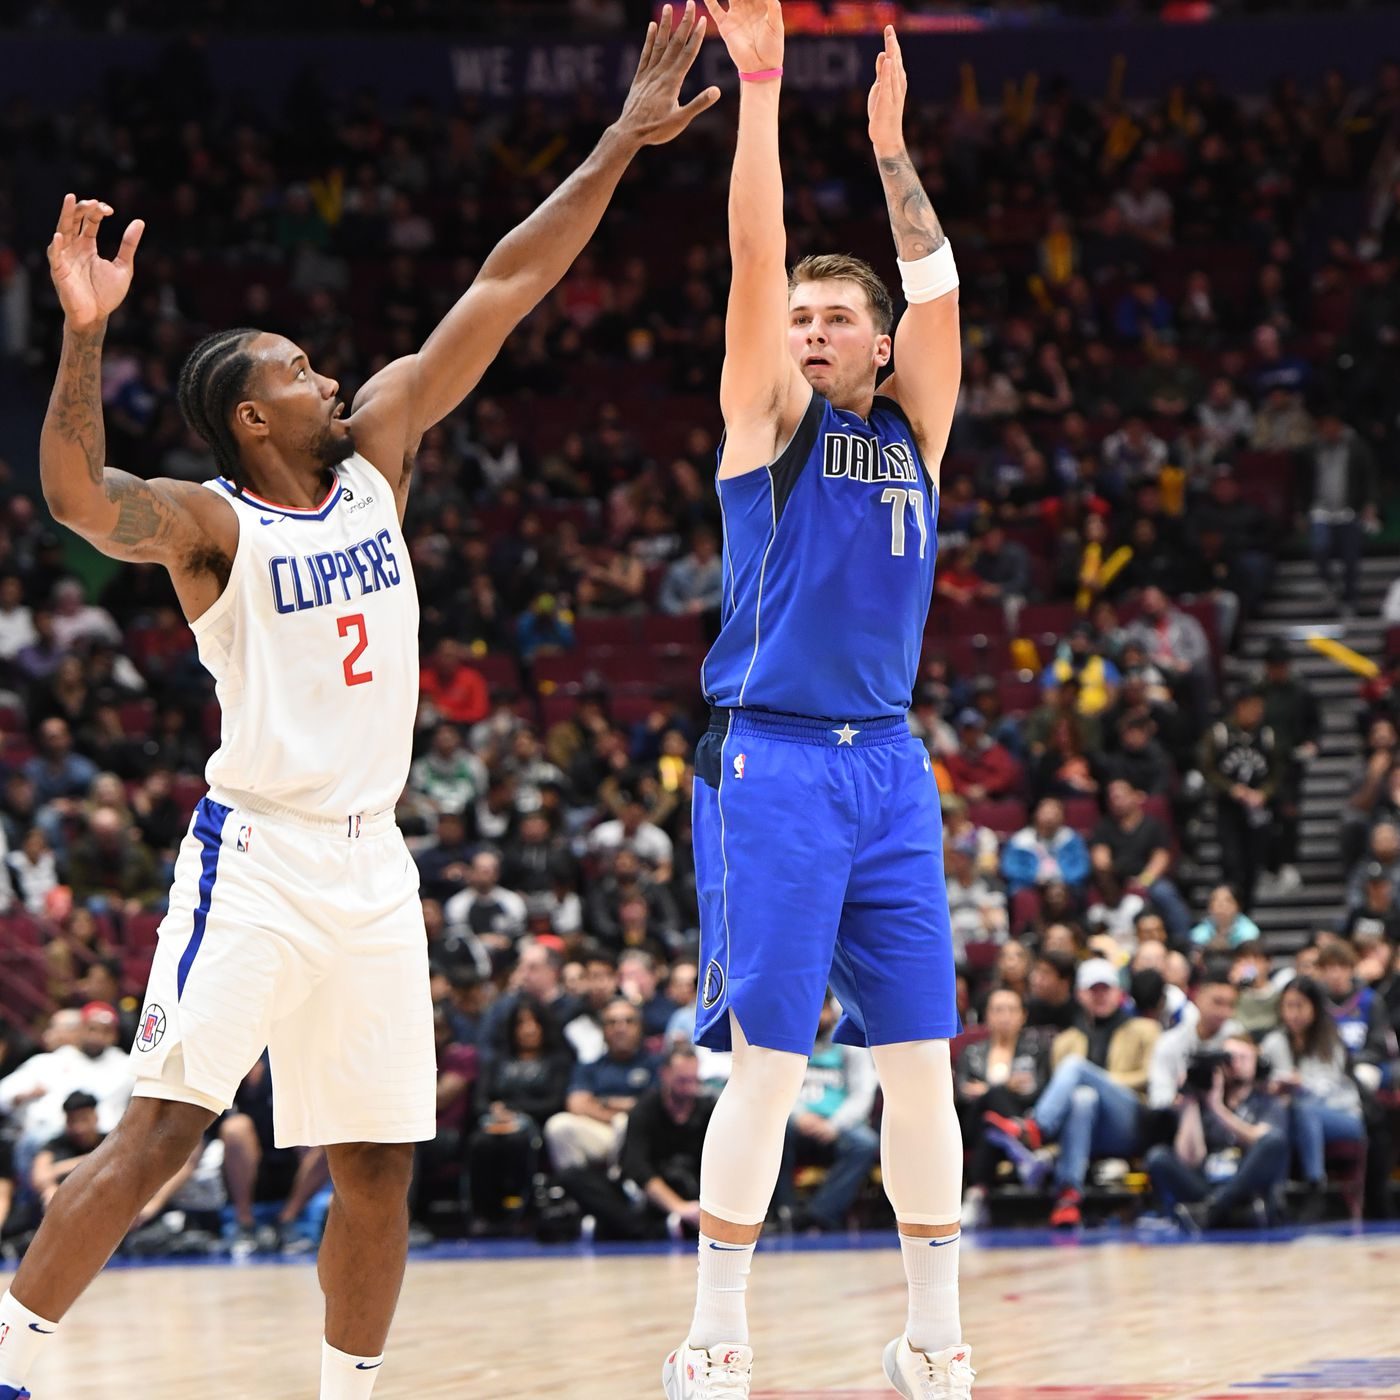 Clippers Vs Mavs Preview Can The Clippers Stop Luka Doncic